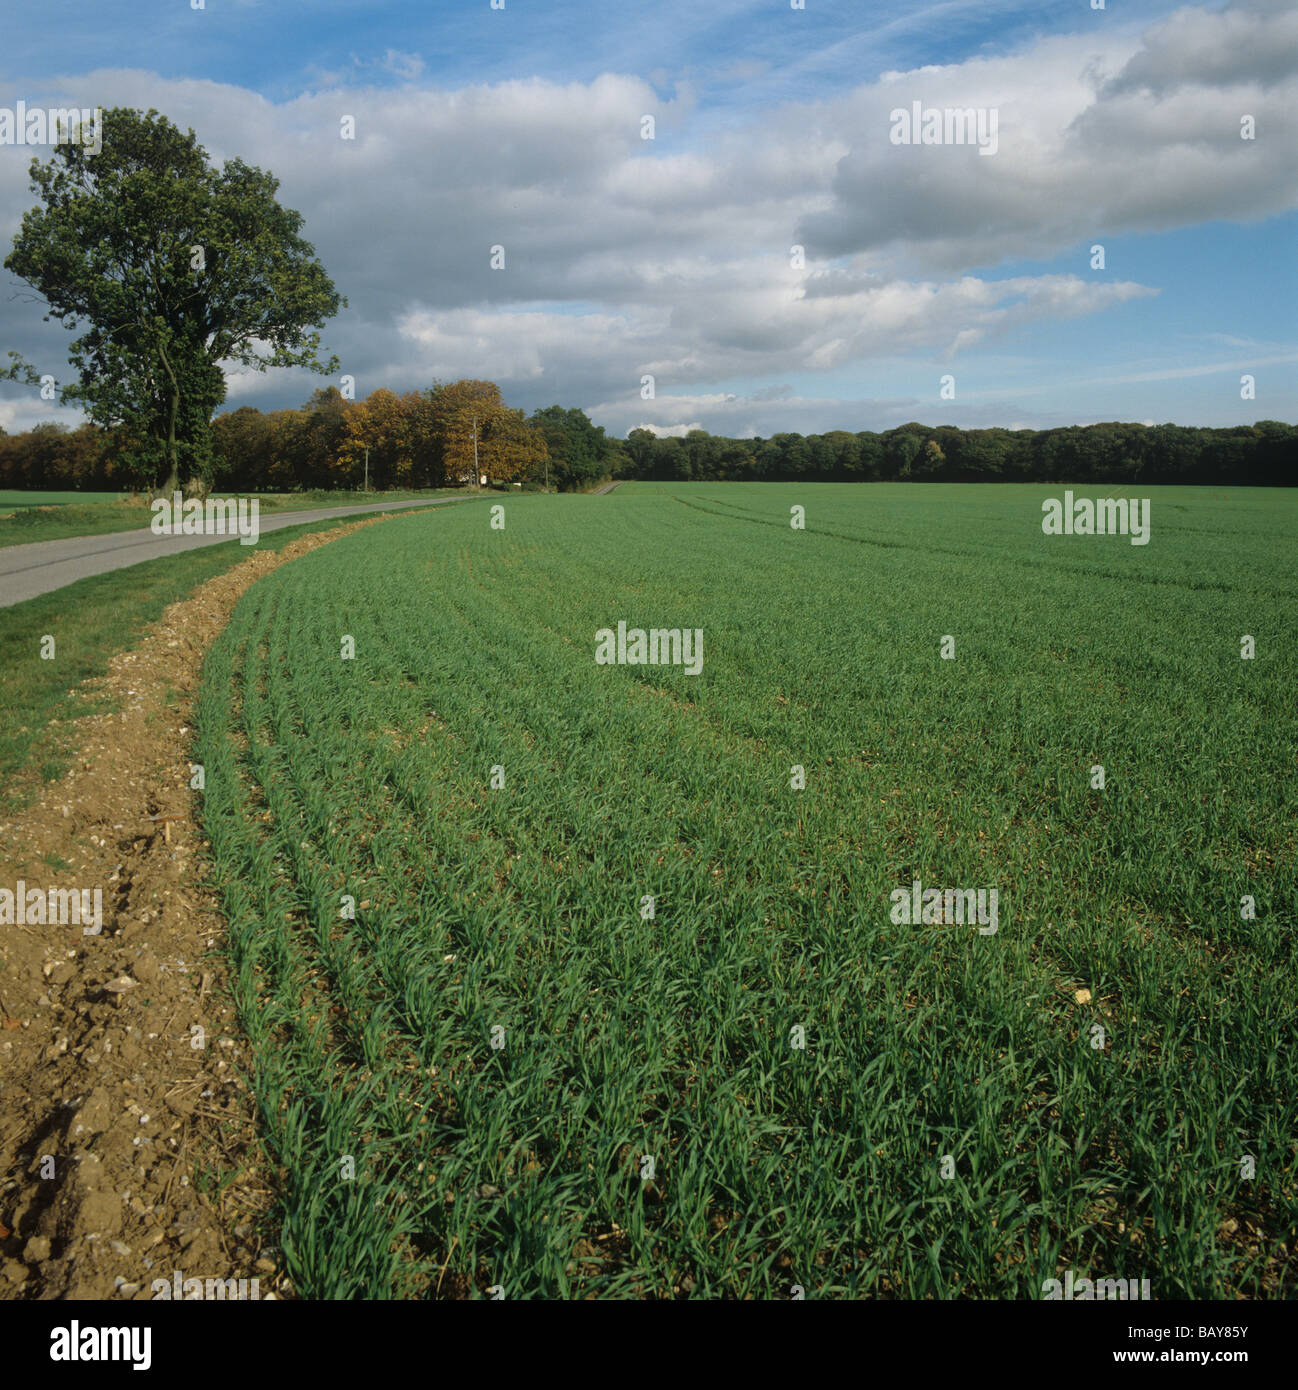 Young barley crop beside a country road with autumn trees Wiltshire - Stock Image